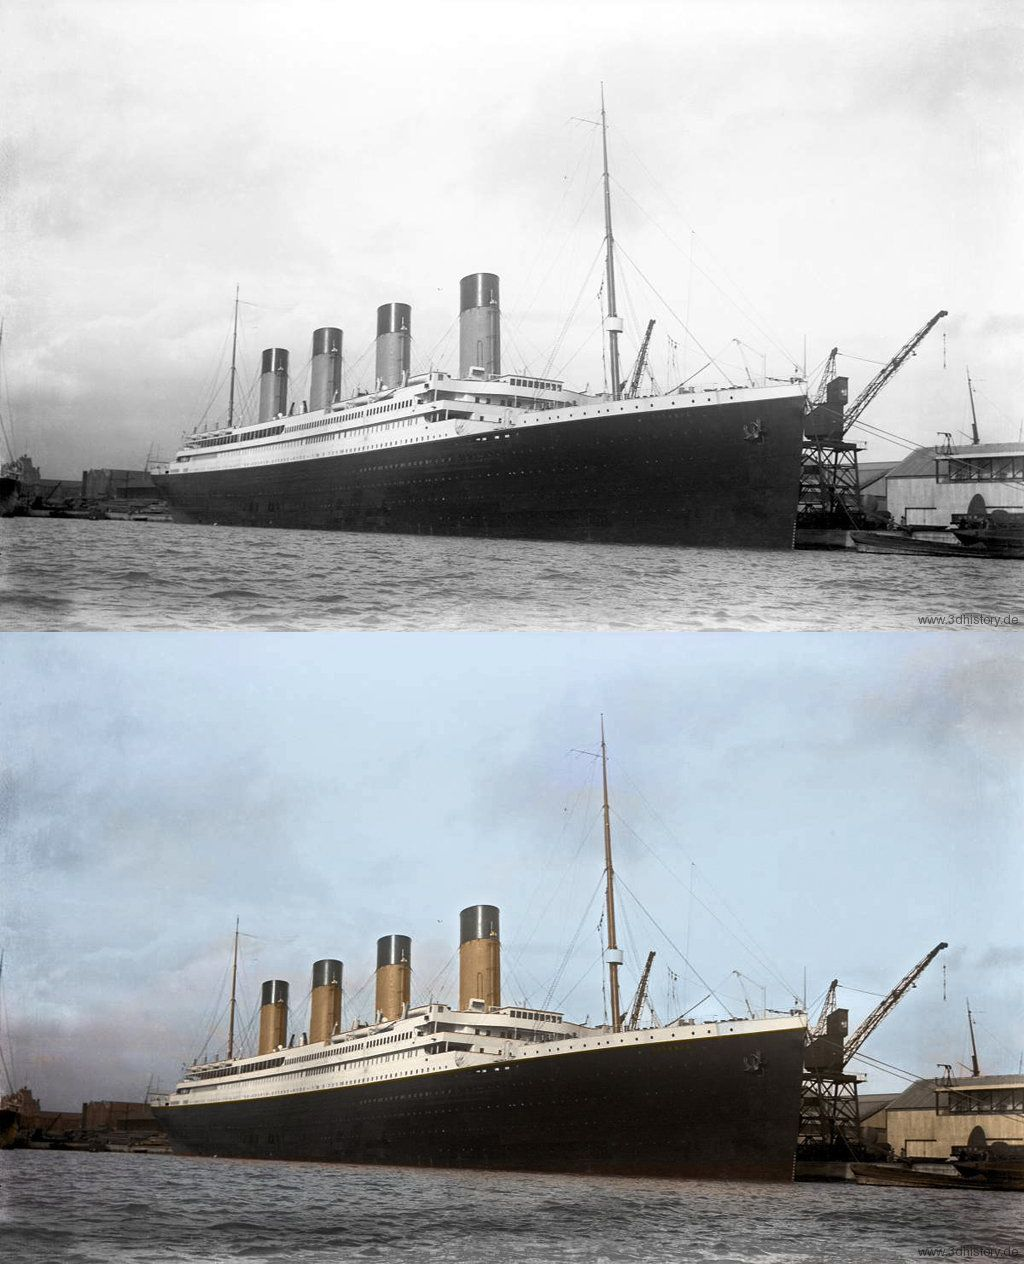 Titanic In Color Photos Of One Of The Largest Passenger Liners Of